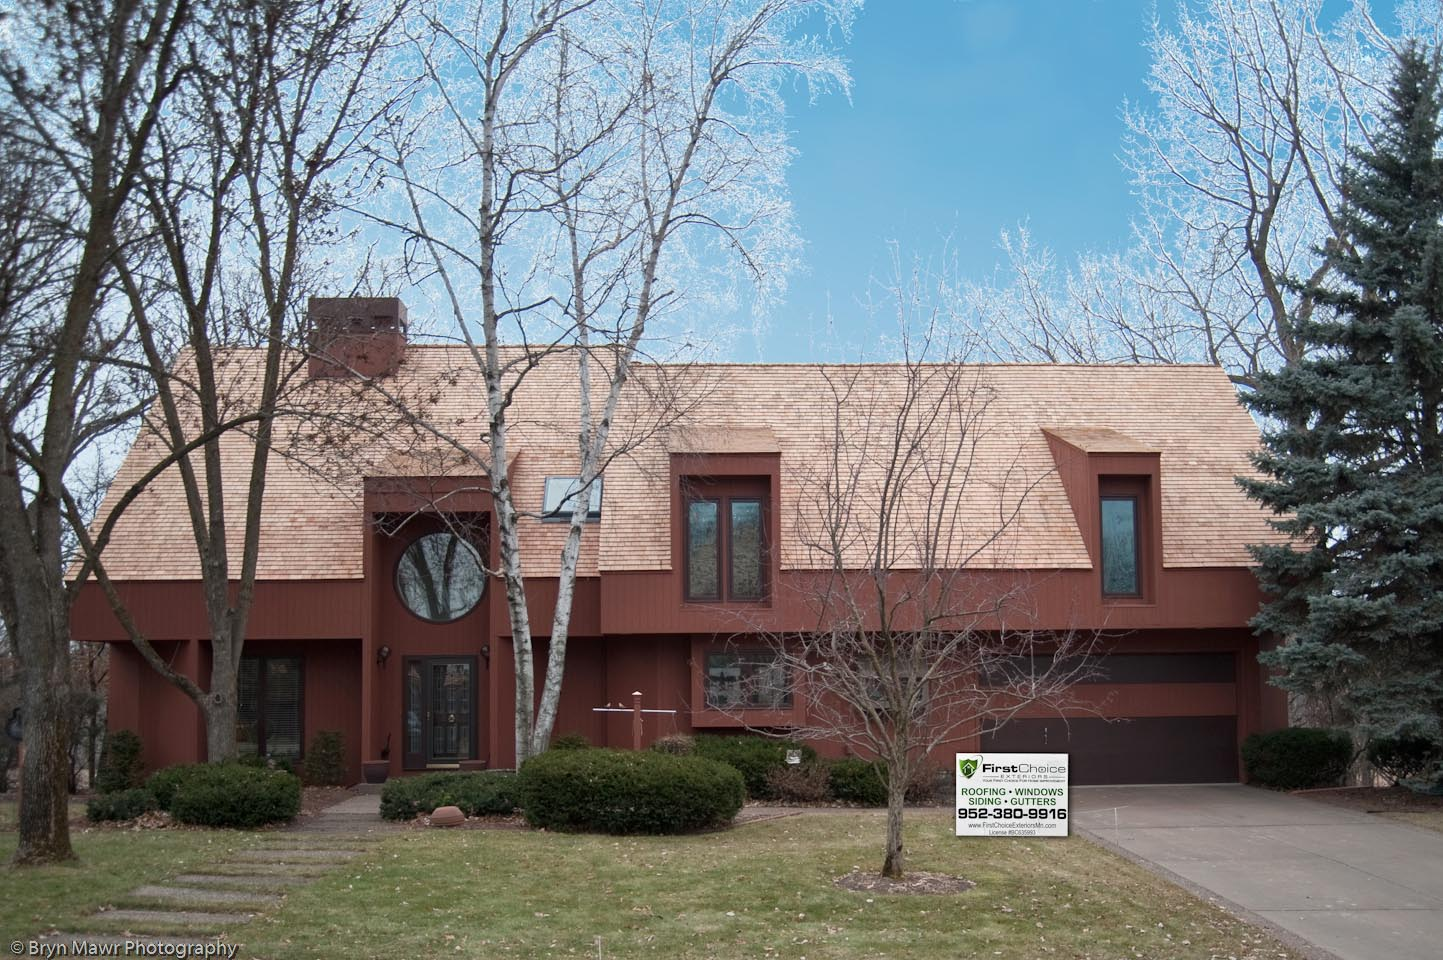 Quality Roofing Services In Eden Prairie First Choice